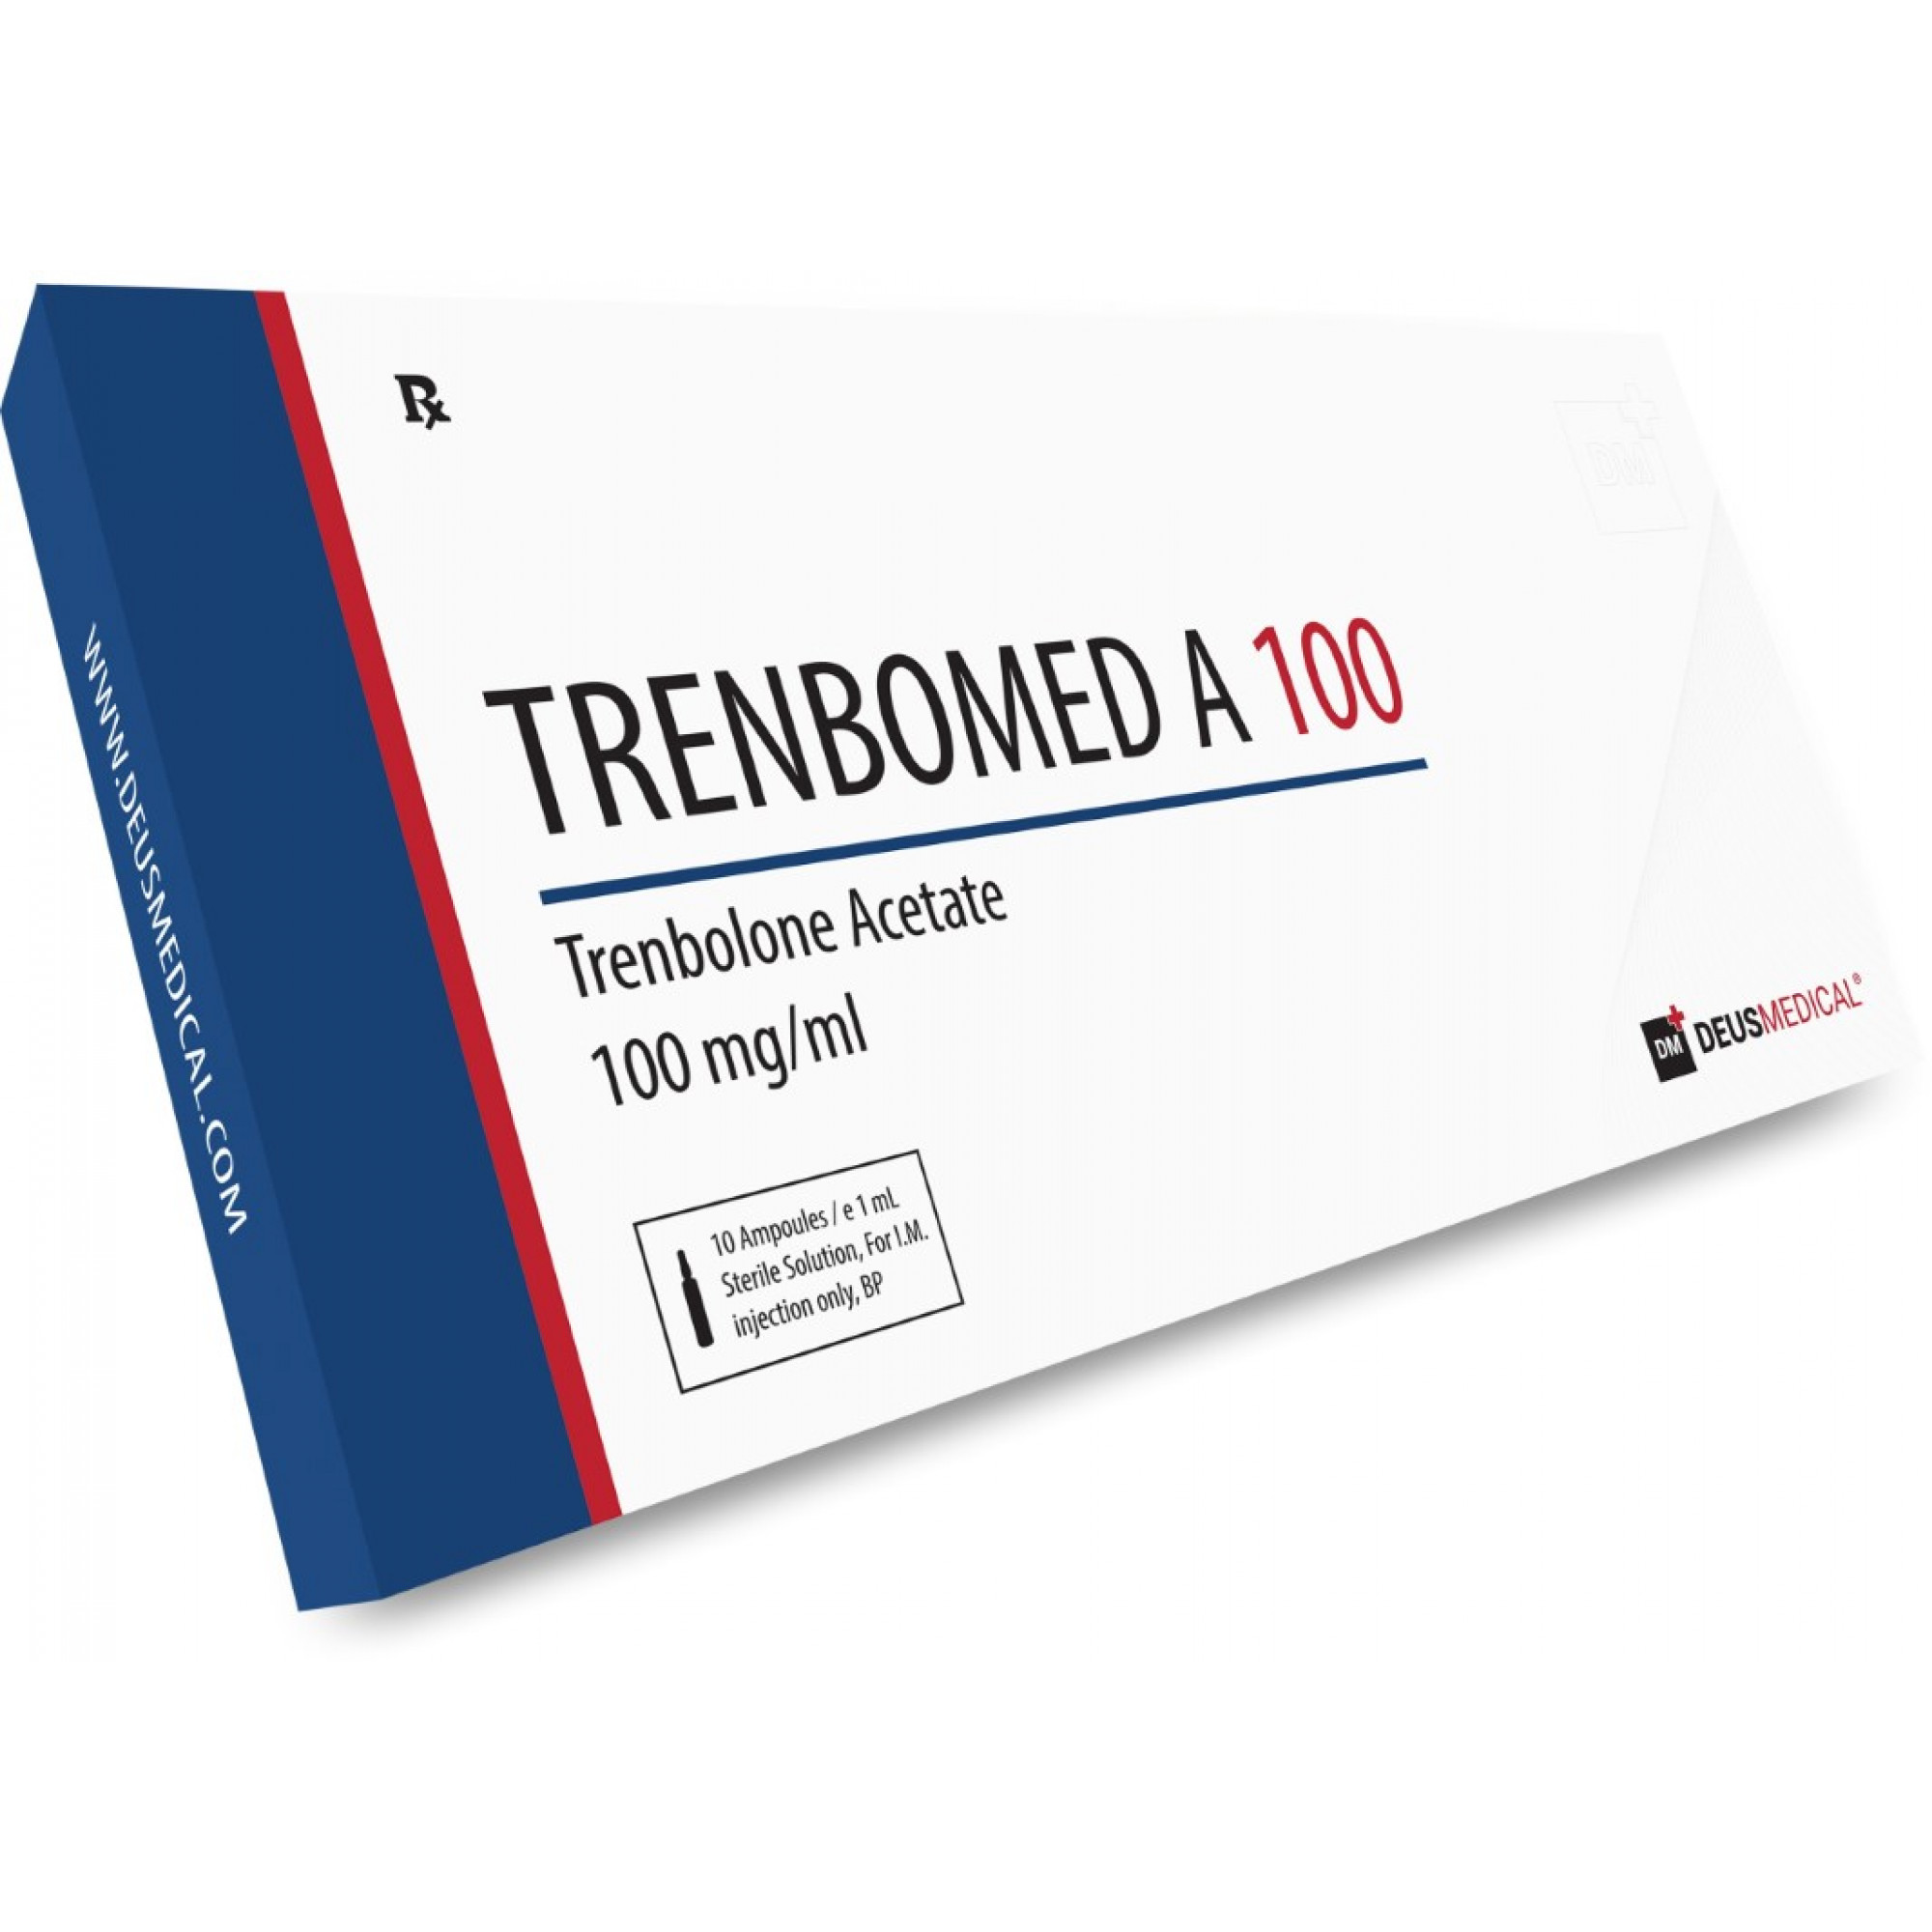 TRENBOMED A 100 (Trenbolone Acetate), DEUS MEDICAL, BUY STEROIDS ONLINE - www.DEUSPOWER.com